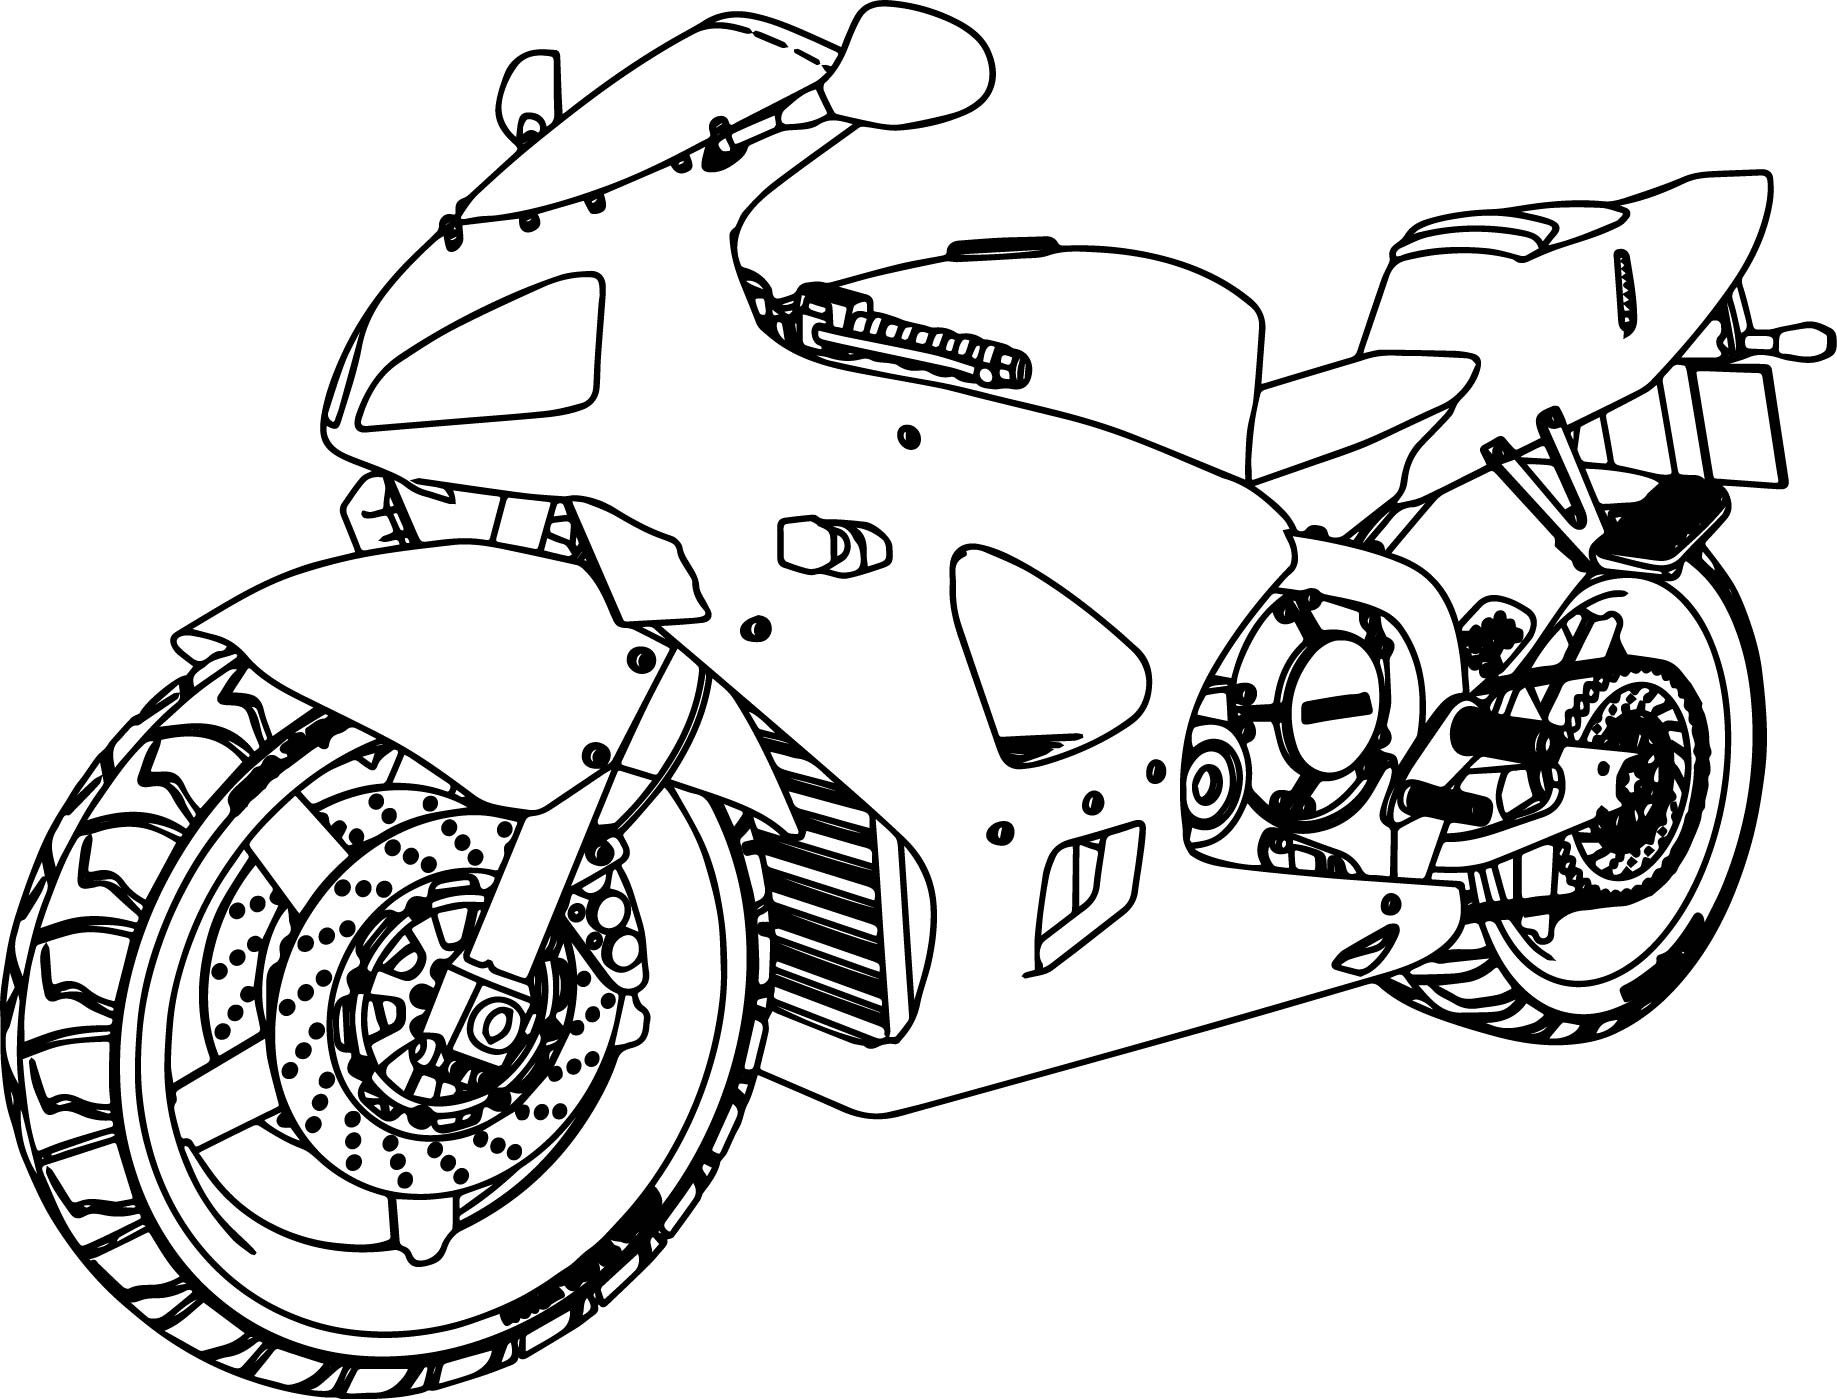 bike coloring pages bike coloring pages at getdrawings free download bike coloring pages